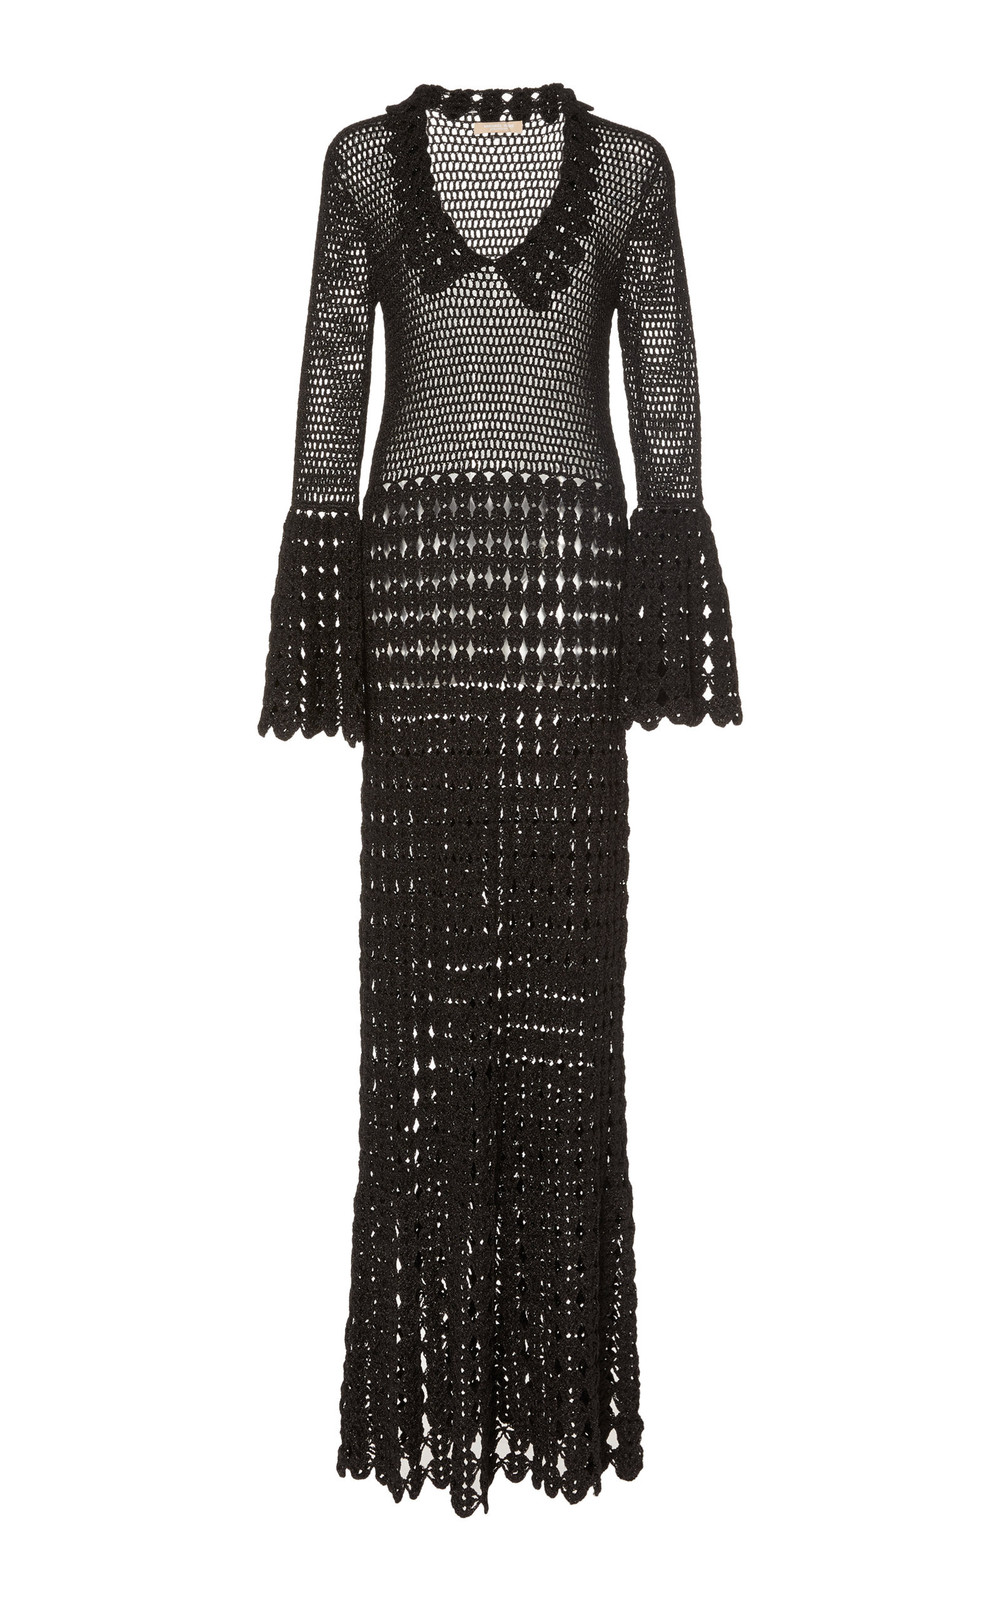 Michael Kors Collection Crocheted Cotton Maxi Dress in black